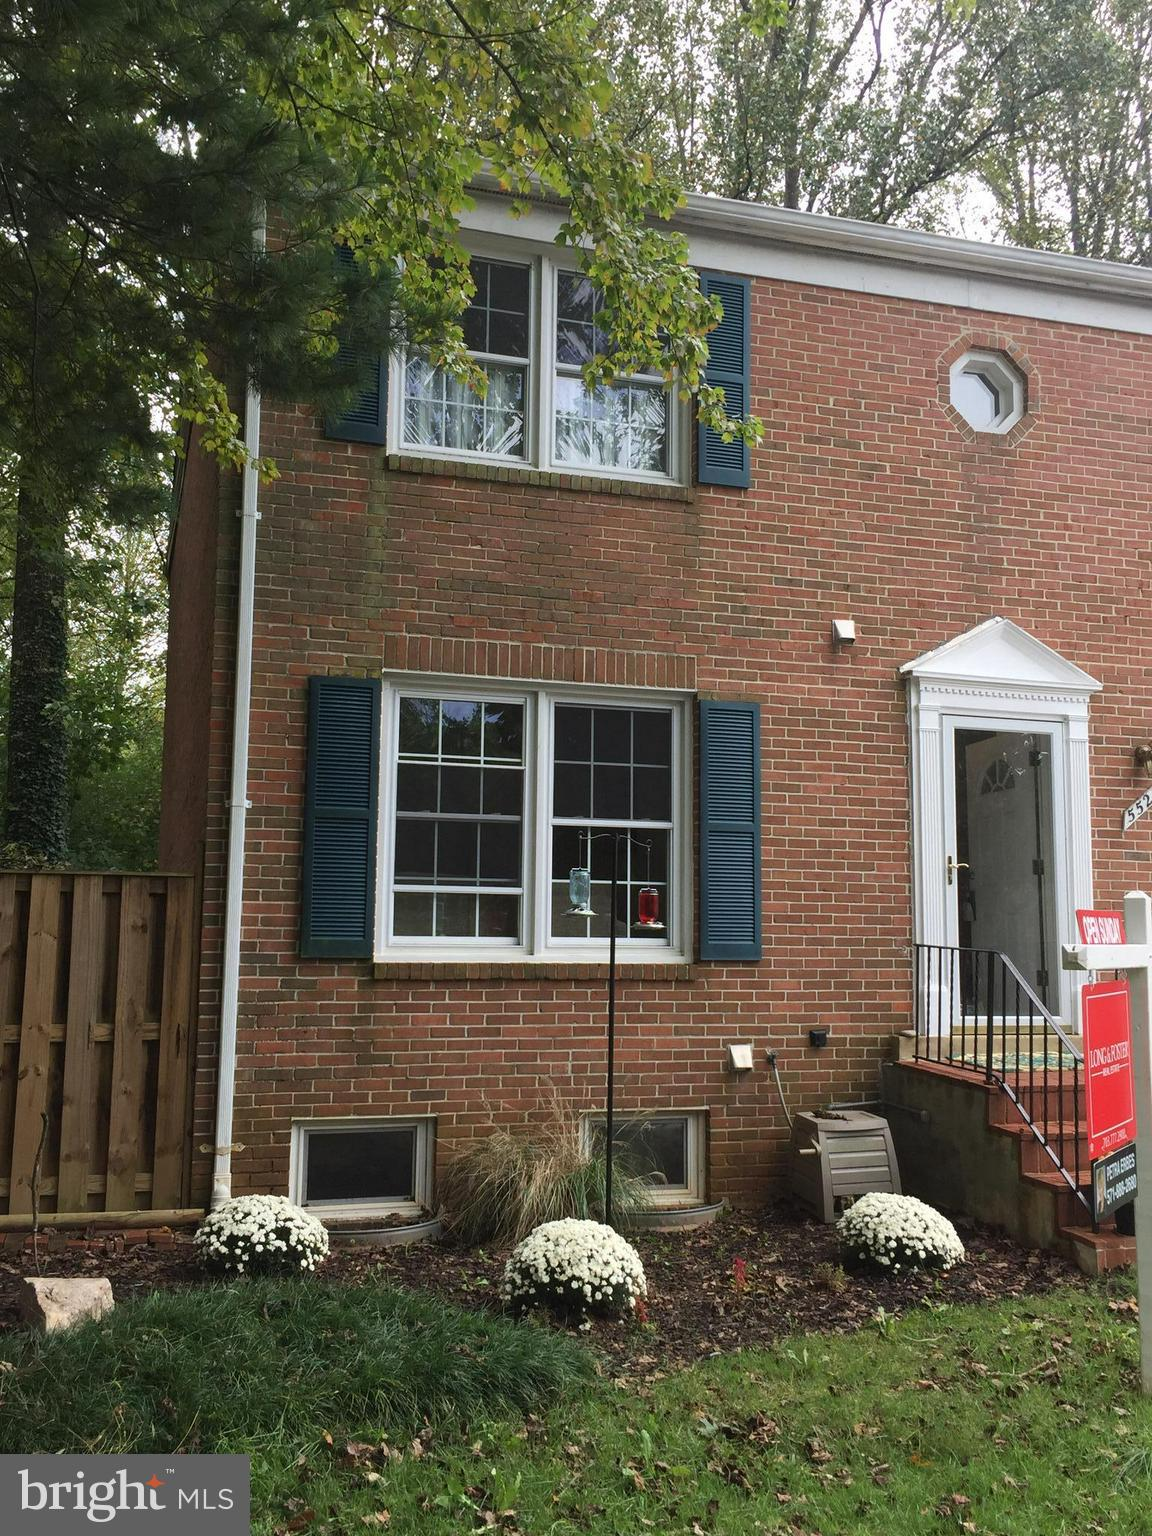 Beautiful, large end unit Townhouse in desirable Lake Braddock subdivision. Professionally refinished hardwood floors in main living area and all bedrooms. Large walk in closet in master bedroom. New refrigerator, new paint throughout house. Finished basement with bonus room. Large fenced in, private back yard, perfect for entertaining.Only minutes away from lake.